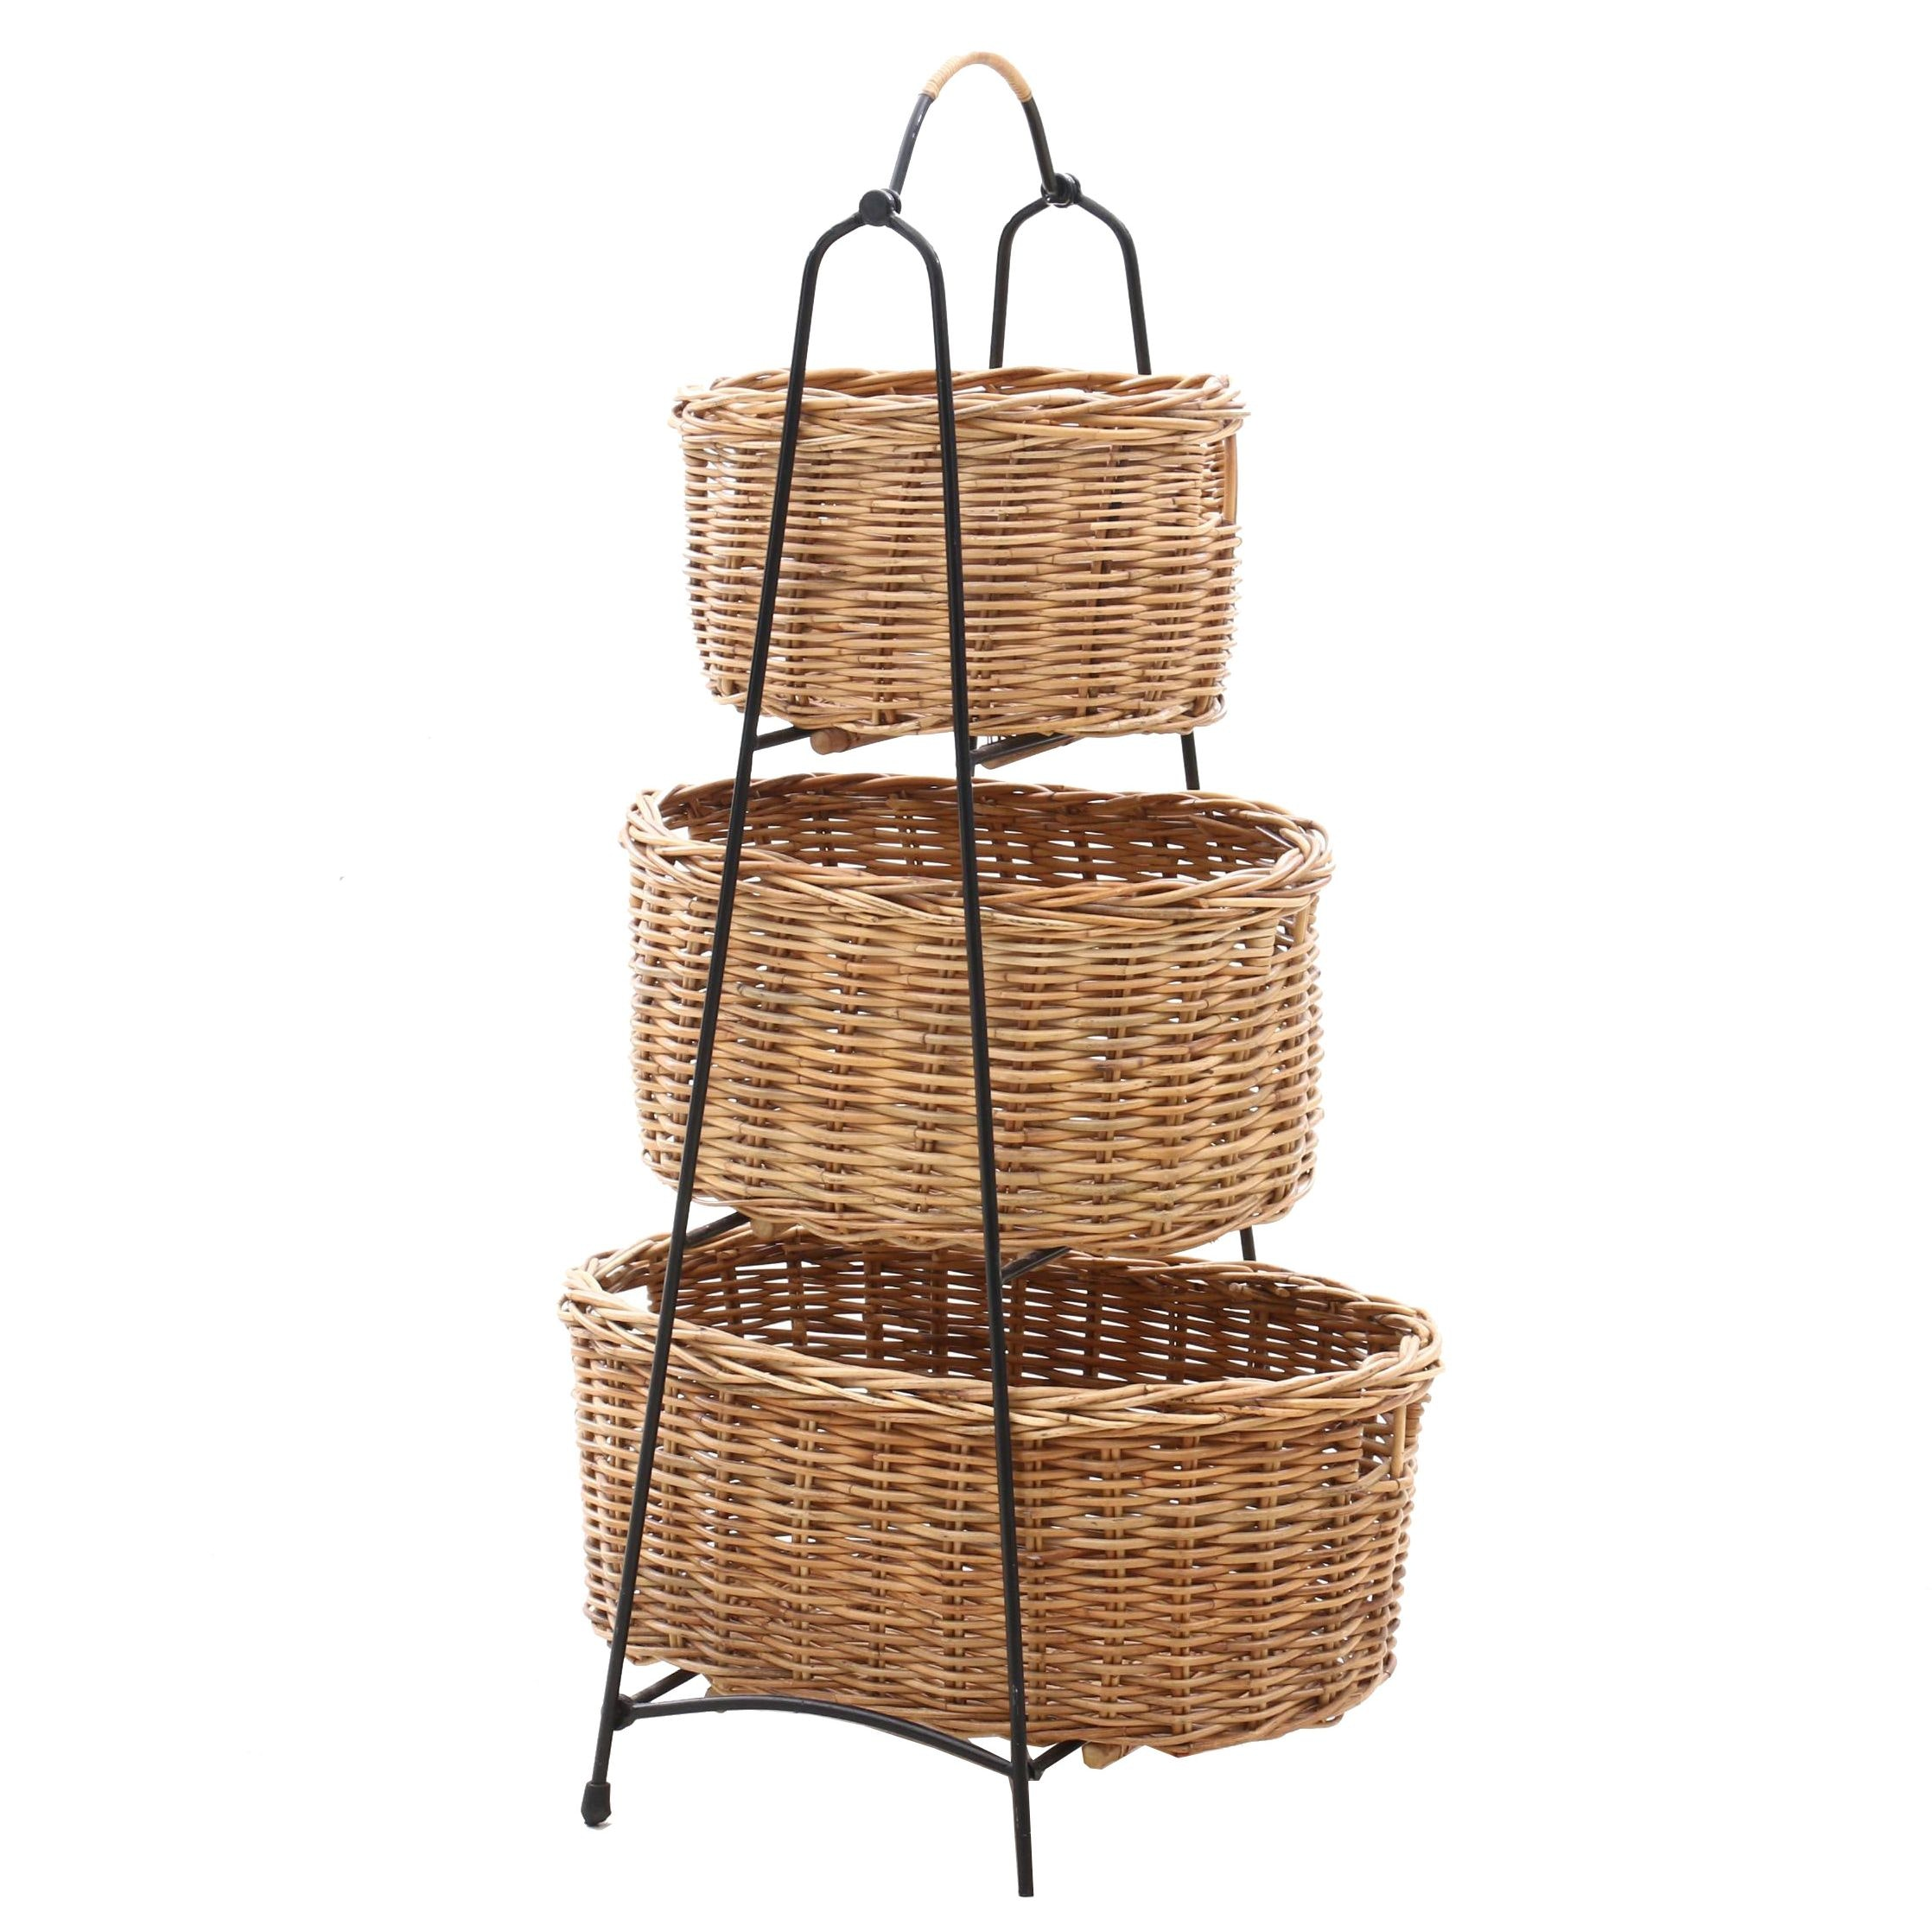 Stand with Wicker Weave Baskets